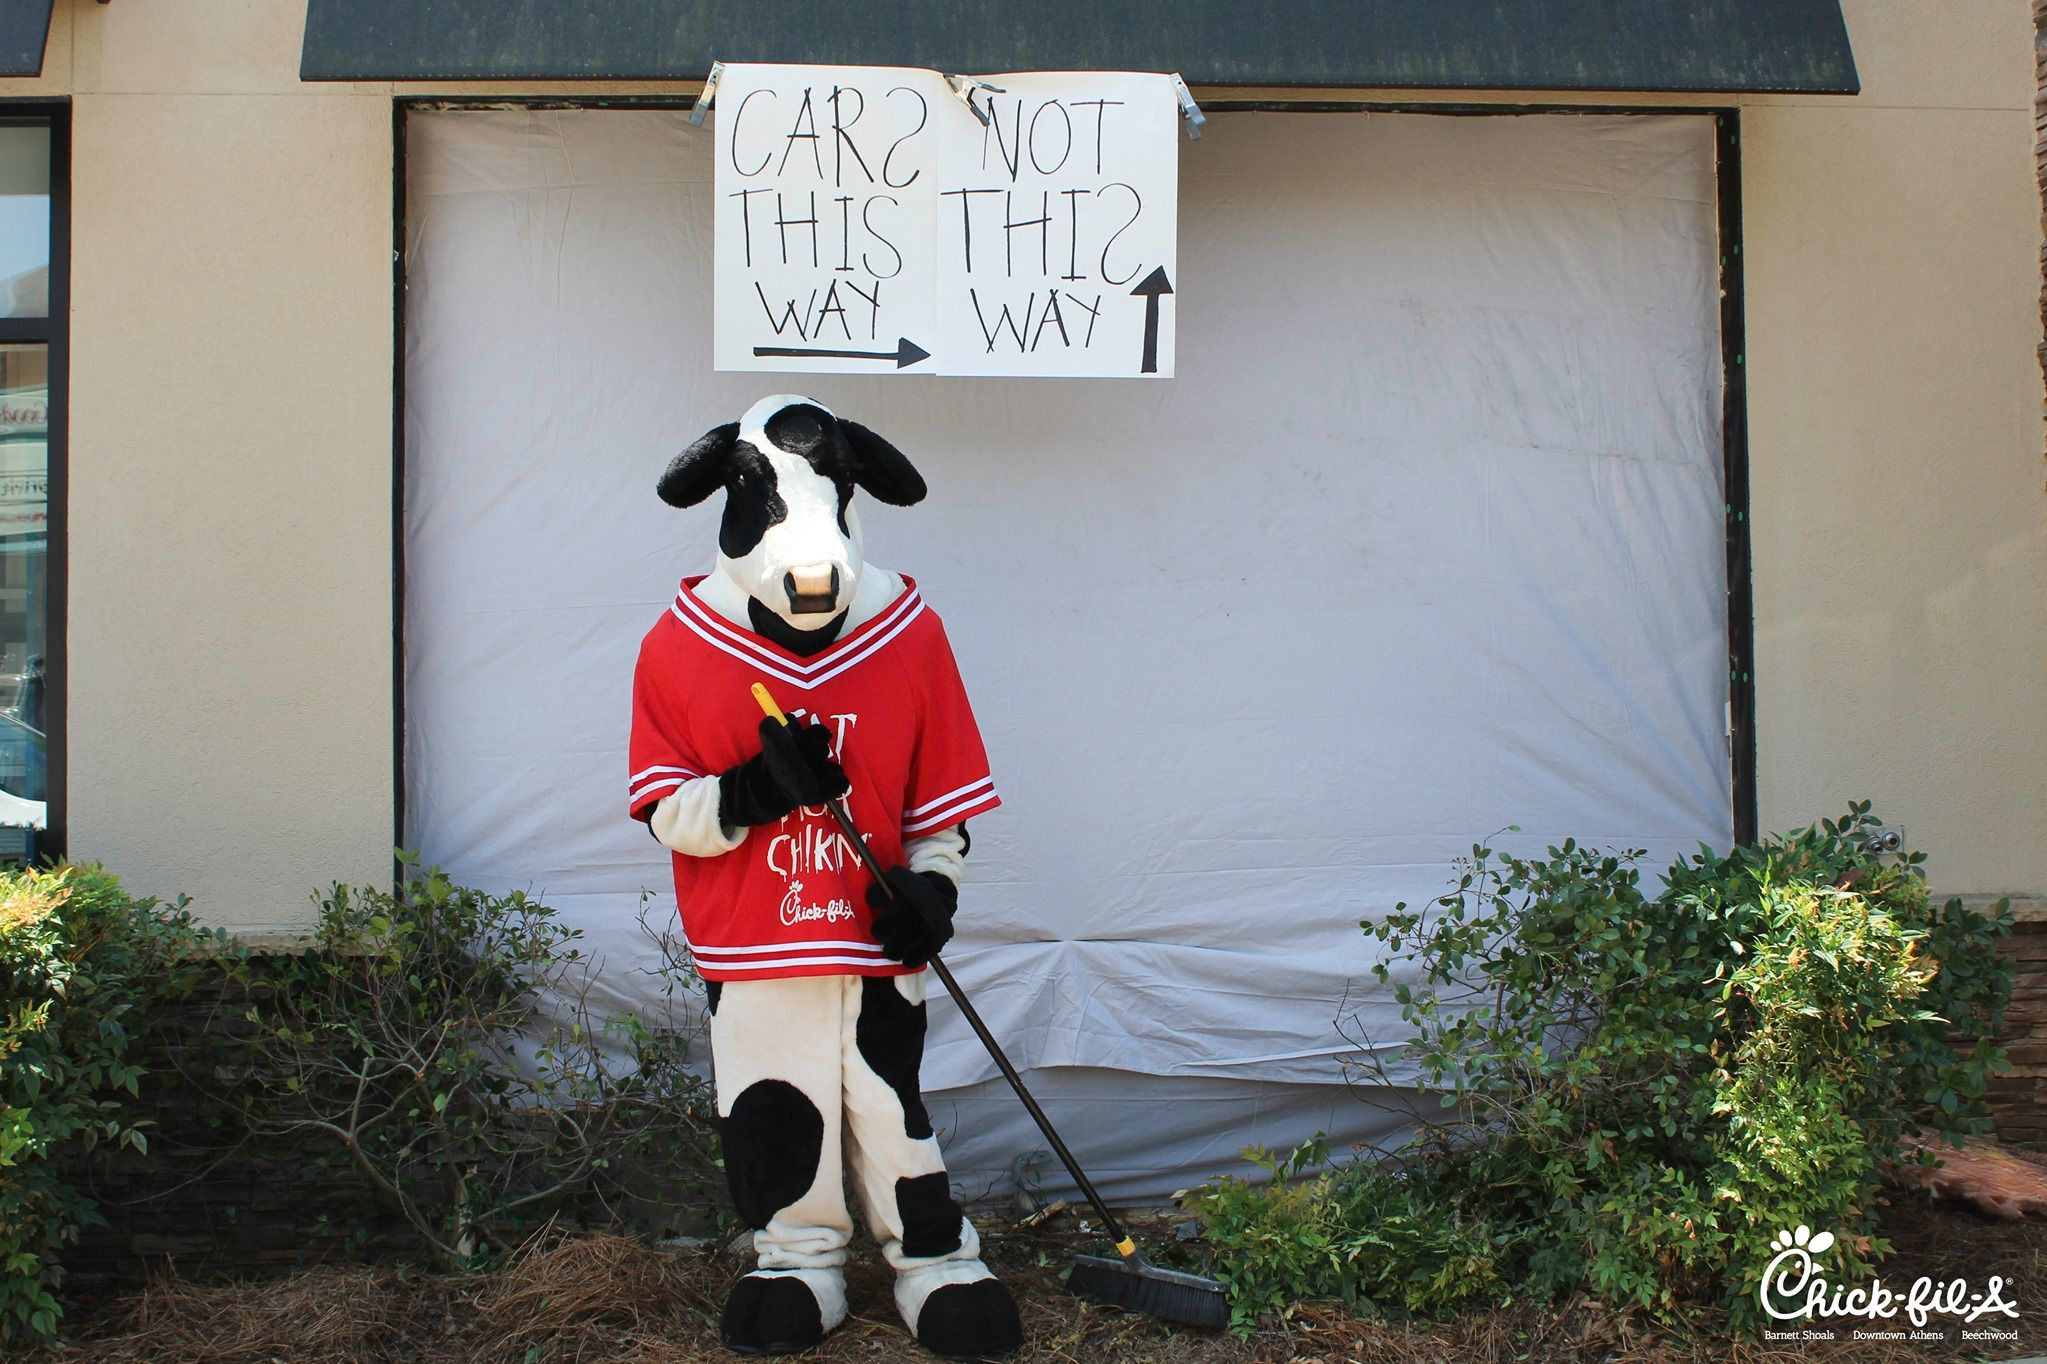 Cow Directs Traffic to Athens Chick fil-A Drive-Thru Hours After Car